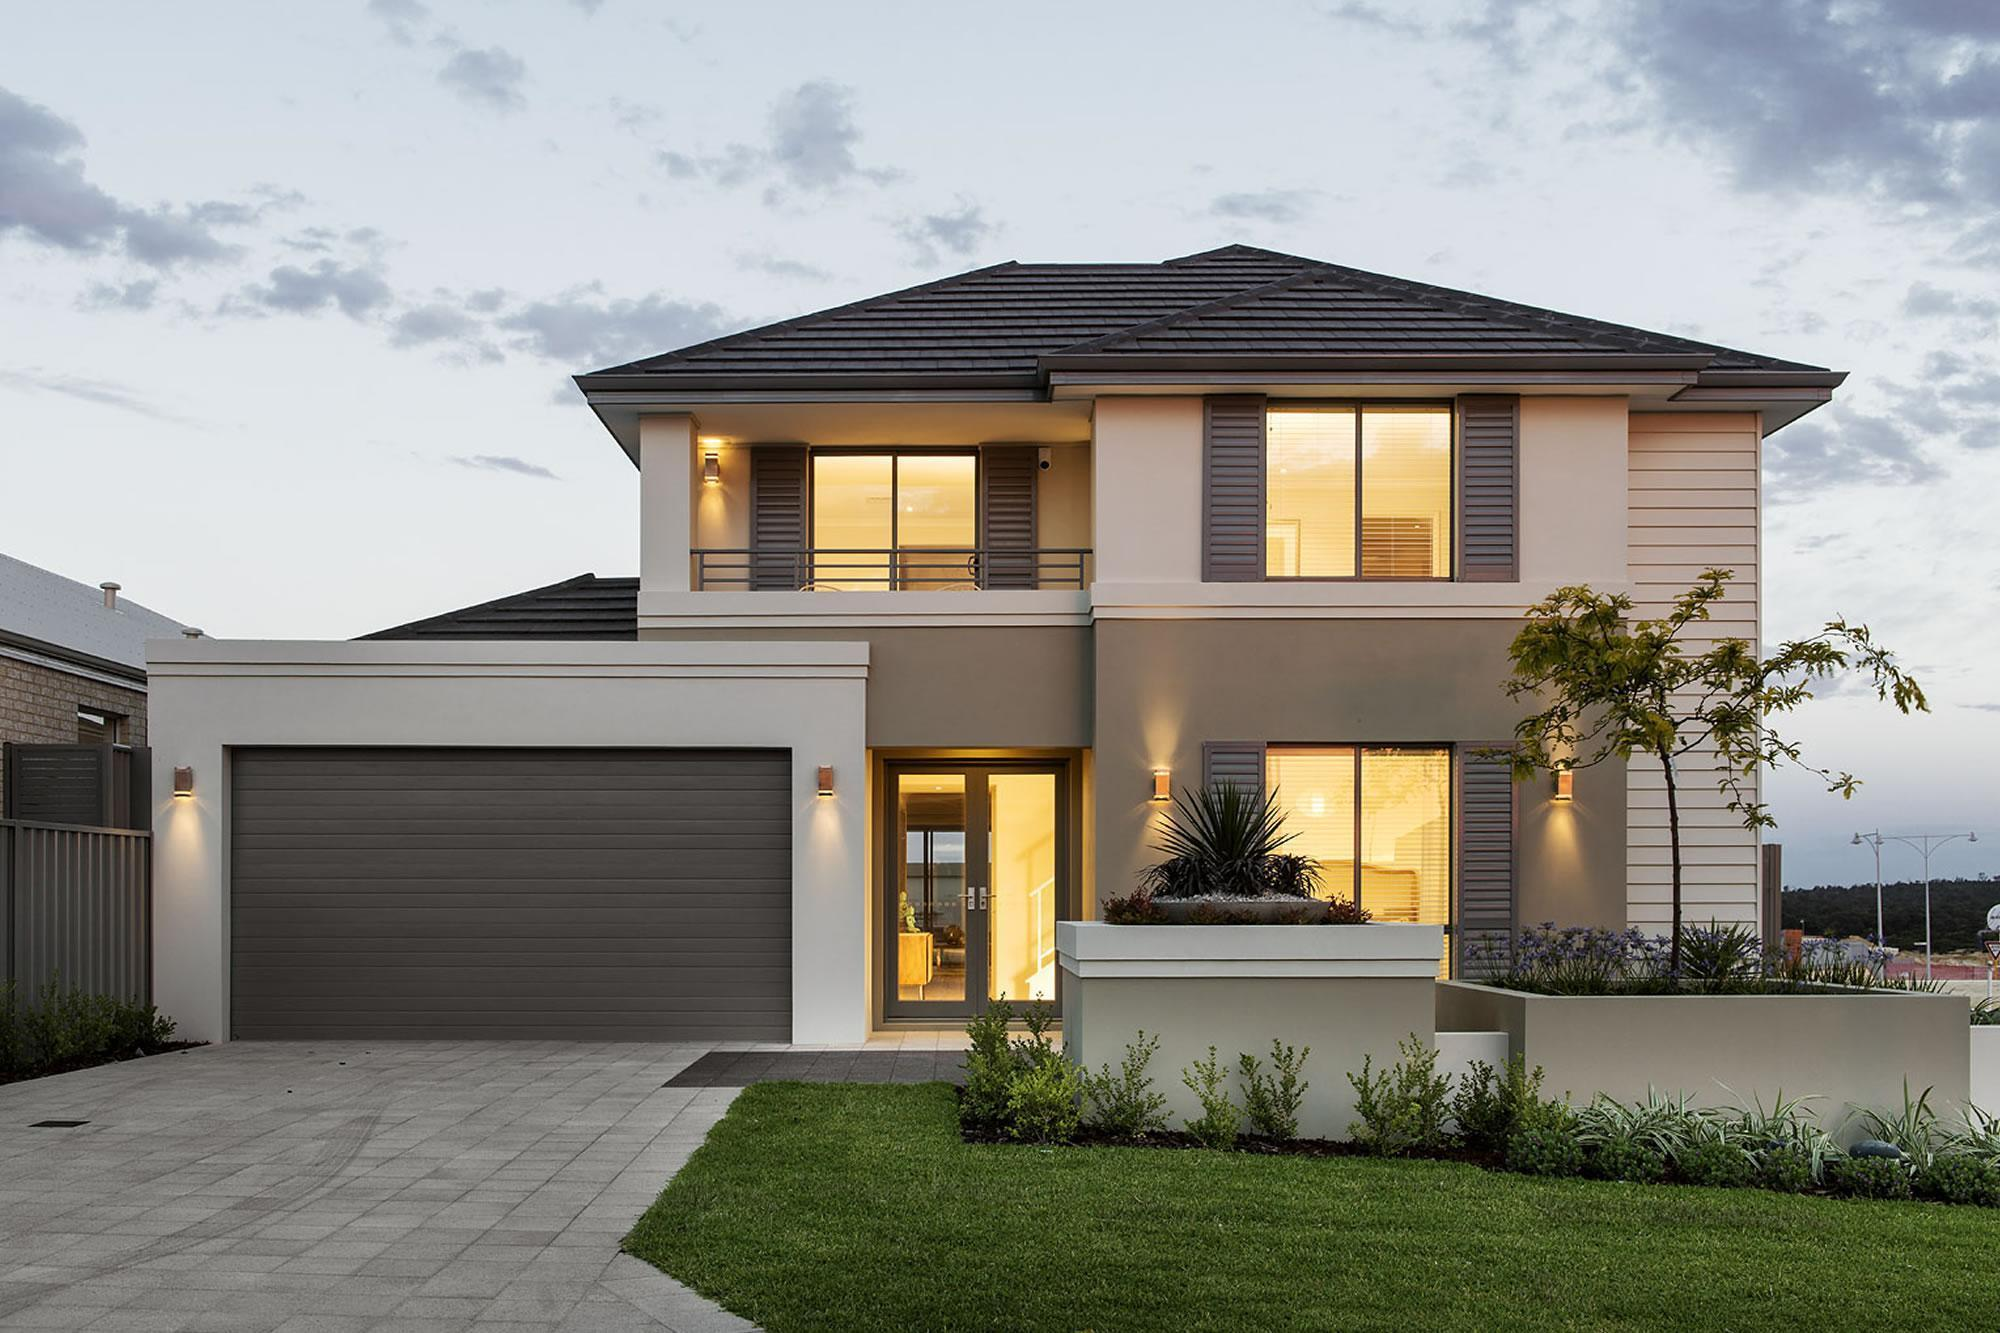 Home Design Ideas Build: When Is The Best Time To Build In Perth? In-Vogue 2 Storey